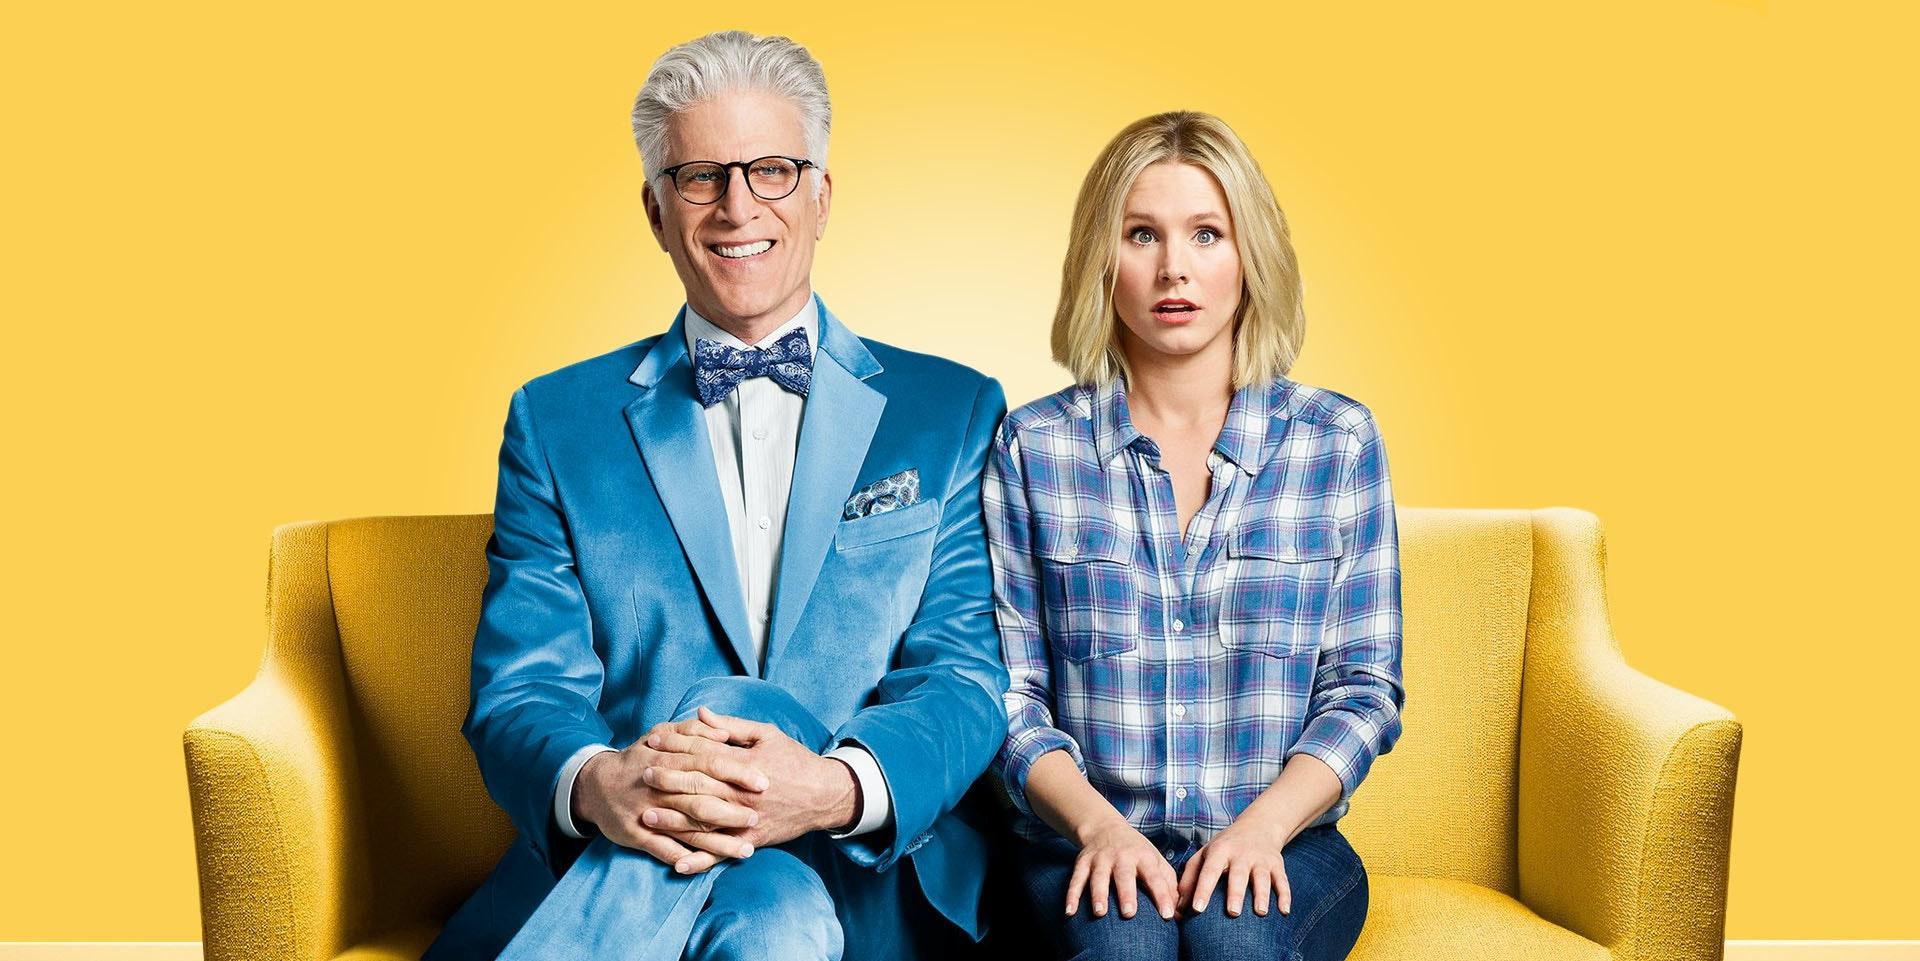 Promotional image for NBC's The Good Place